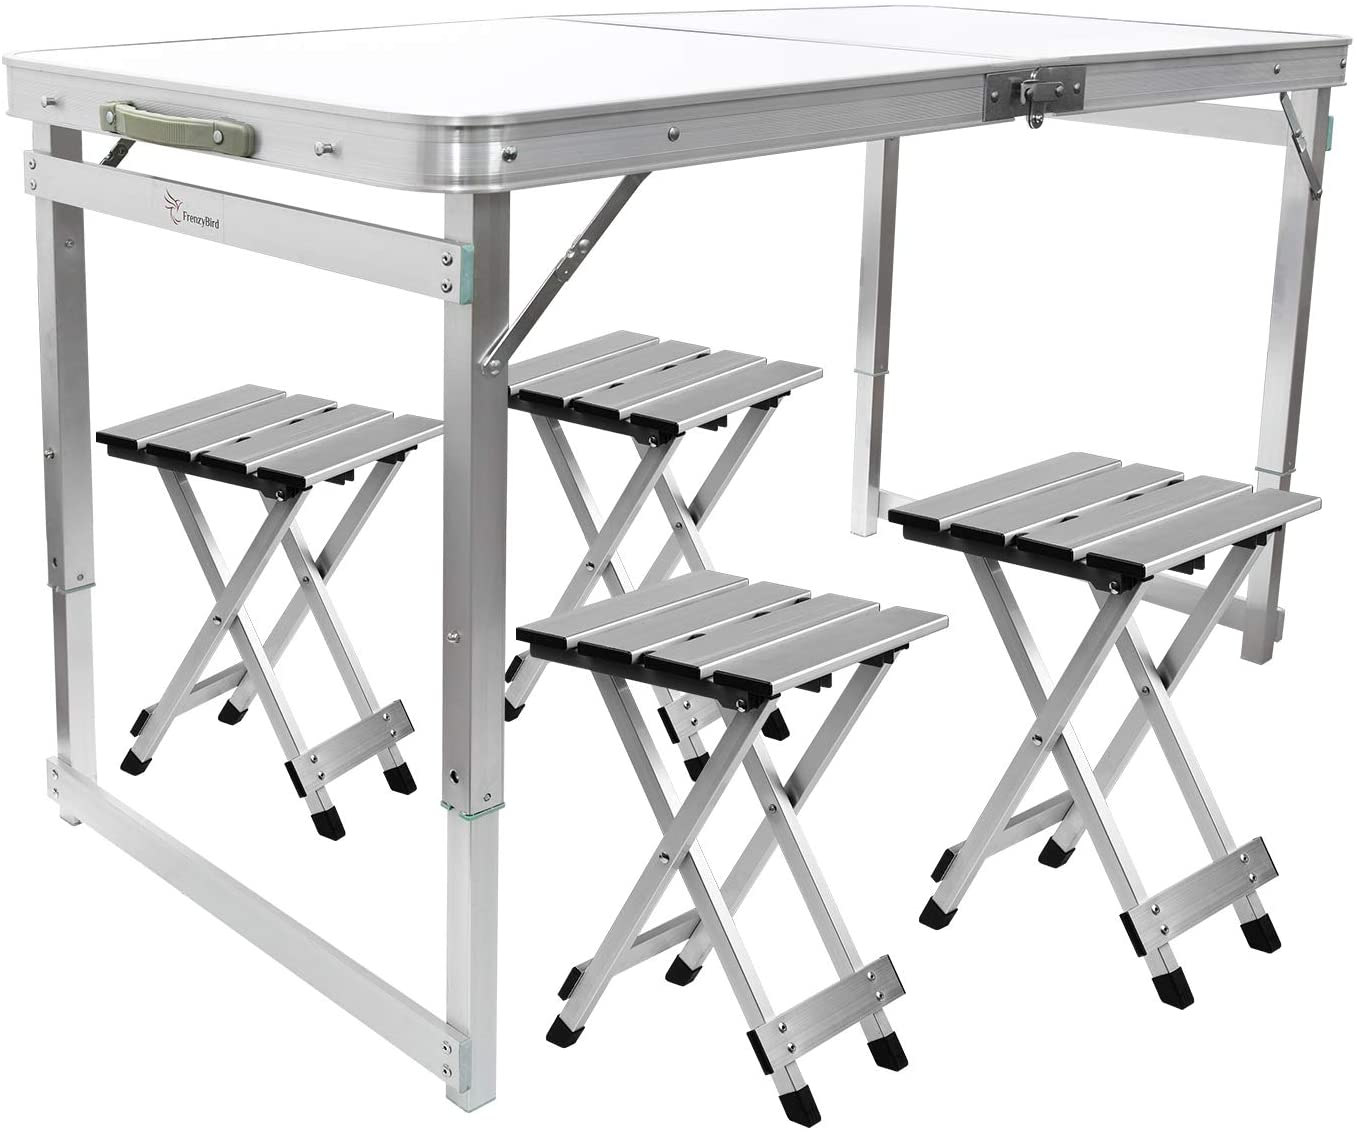 Buy Frenzybird Folding Picnic Table With 4 Stools Aluminum Table Chair Set For Up To 4 Persons Portable Lightweight And Heights Adjustable For Outdoor Camping Dining Bbq Party Online In Turkey B07c89nx2j